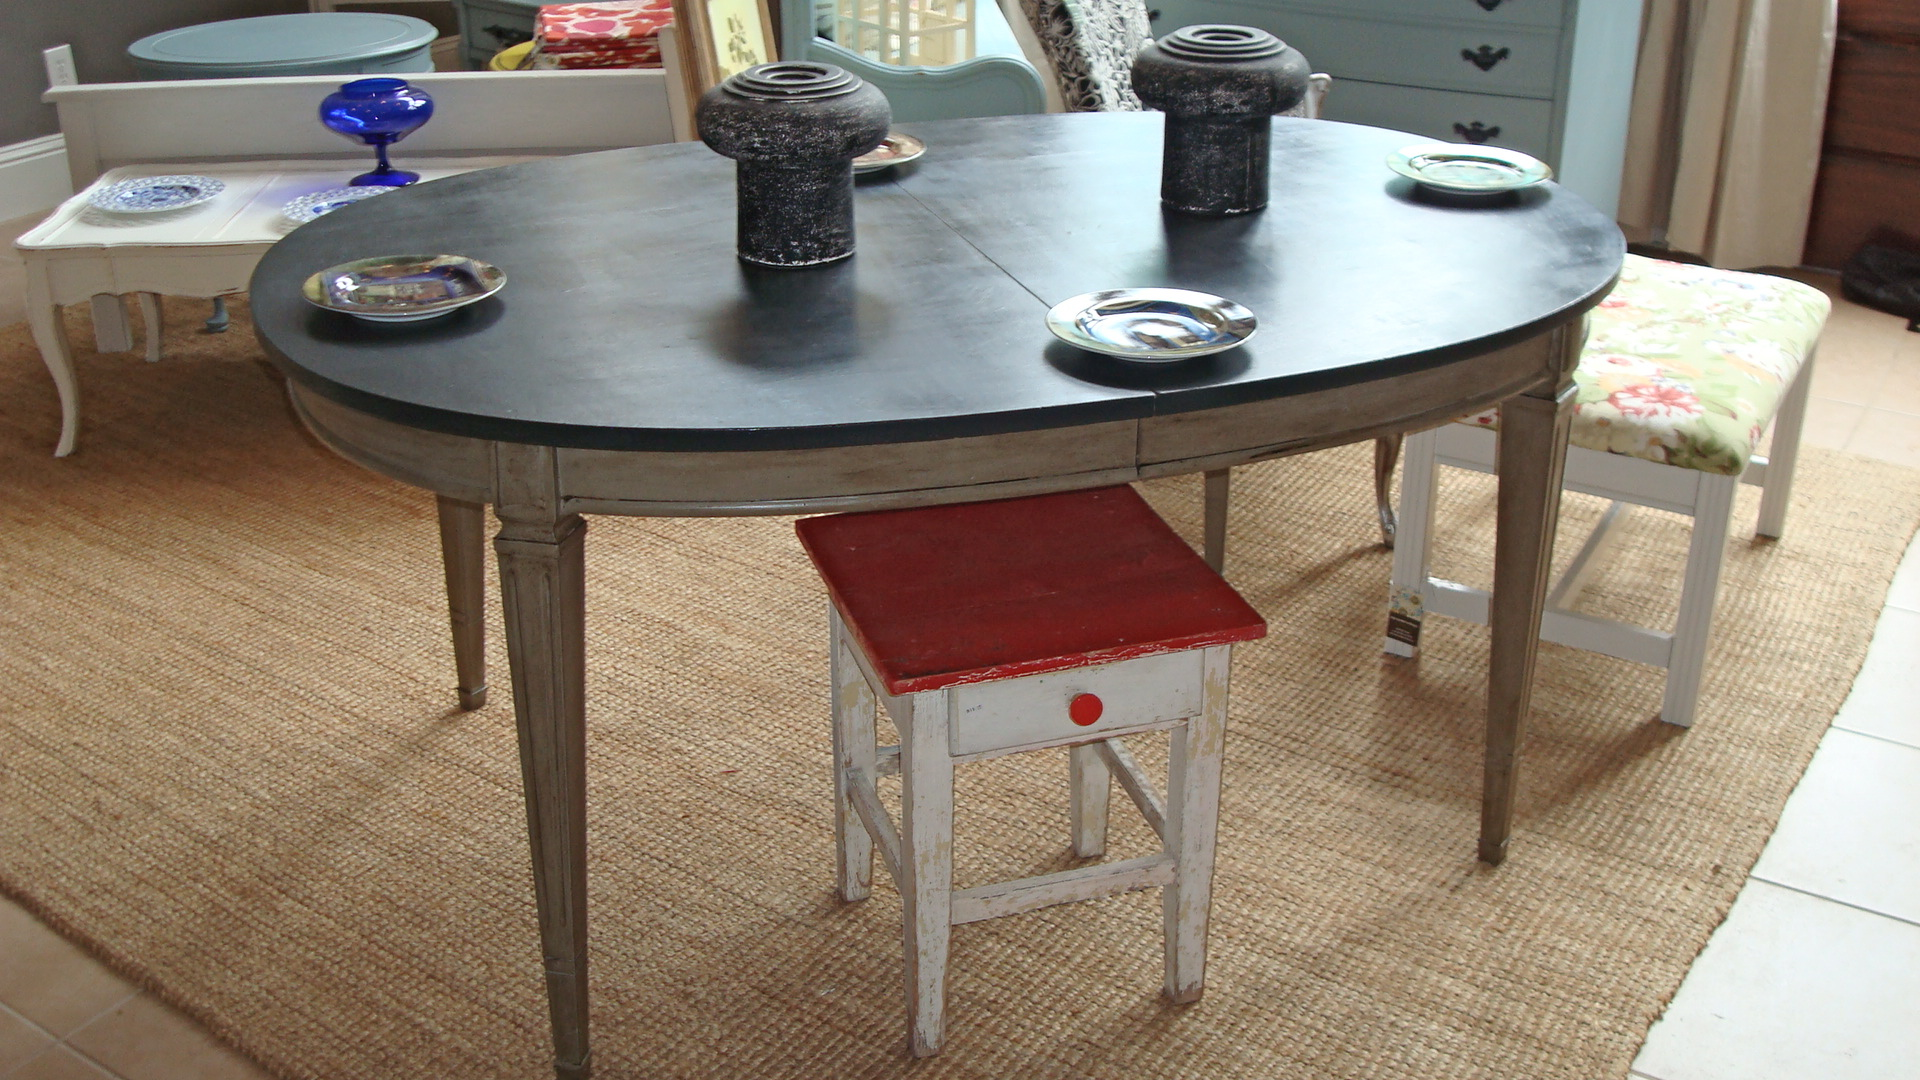 The mother daughter 39 upcycle 39 queens of magazine street for Upcycled dining table